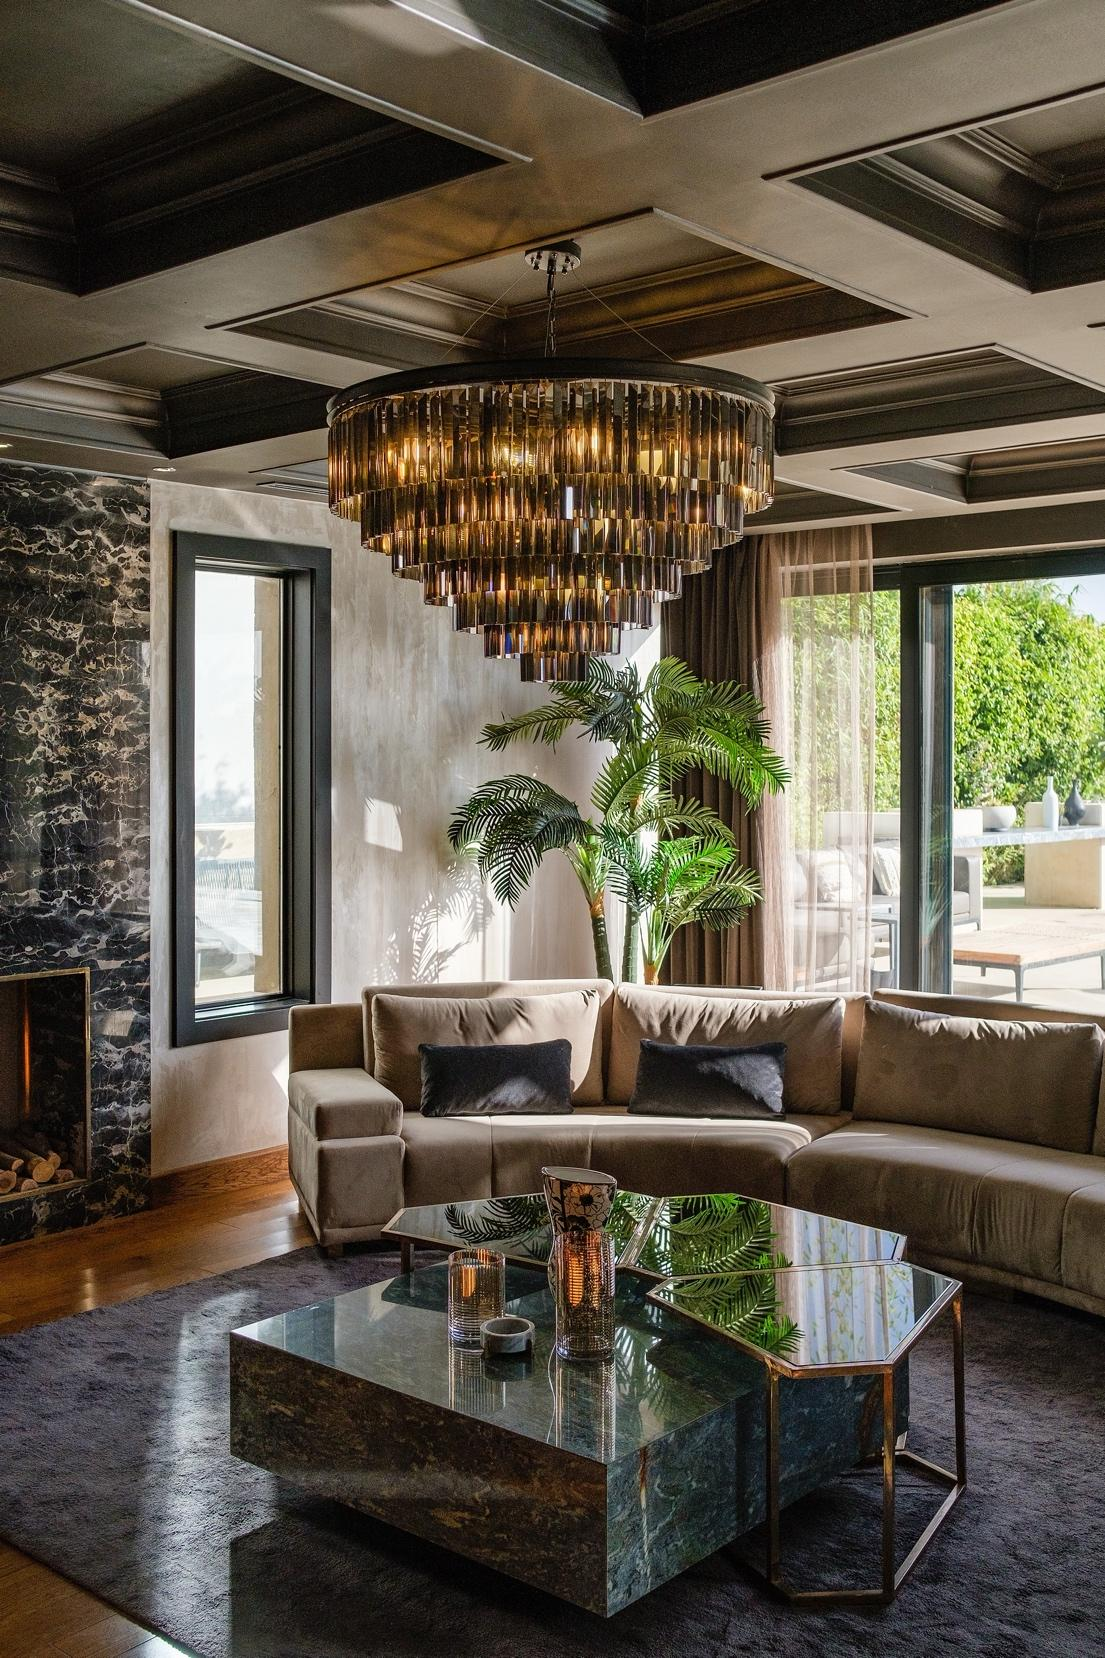 A living room with a chandelier  Description automatically generated with medium confidence